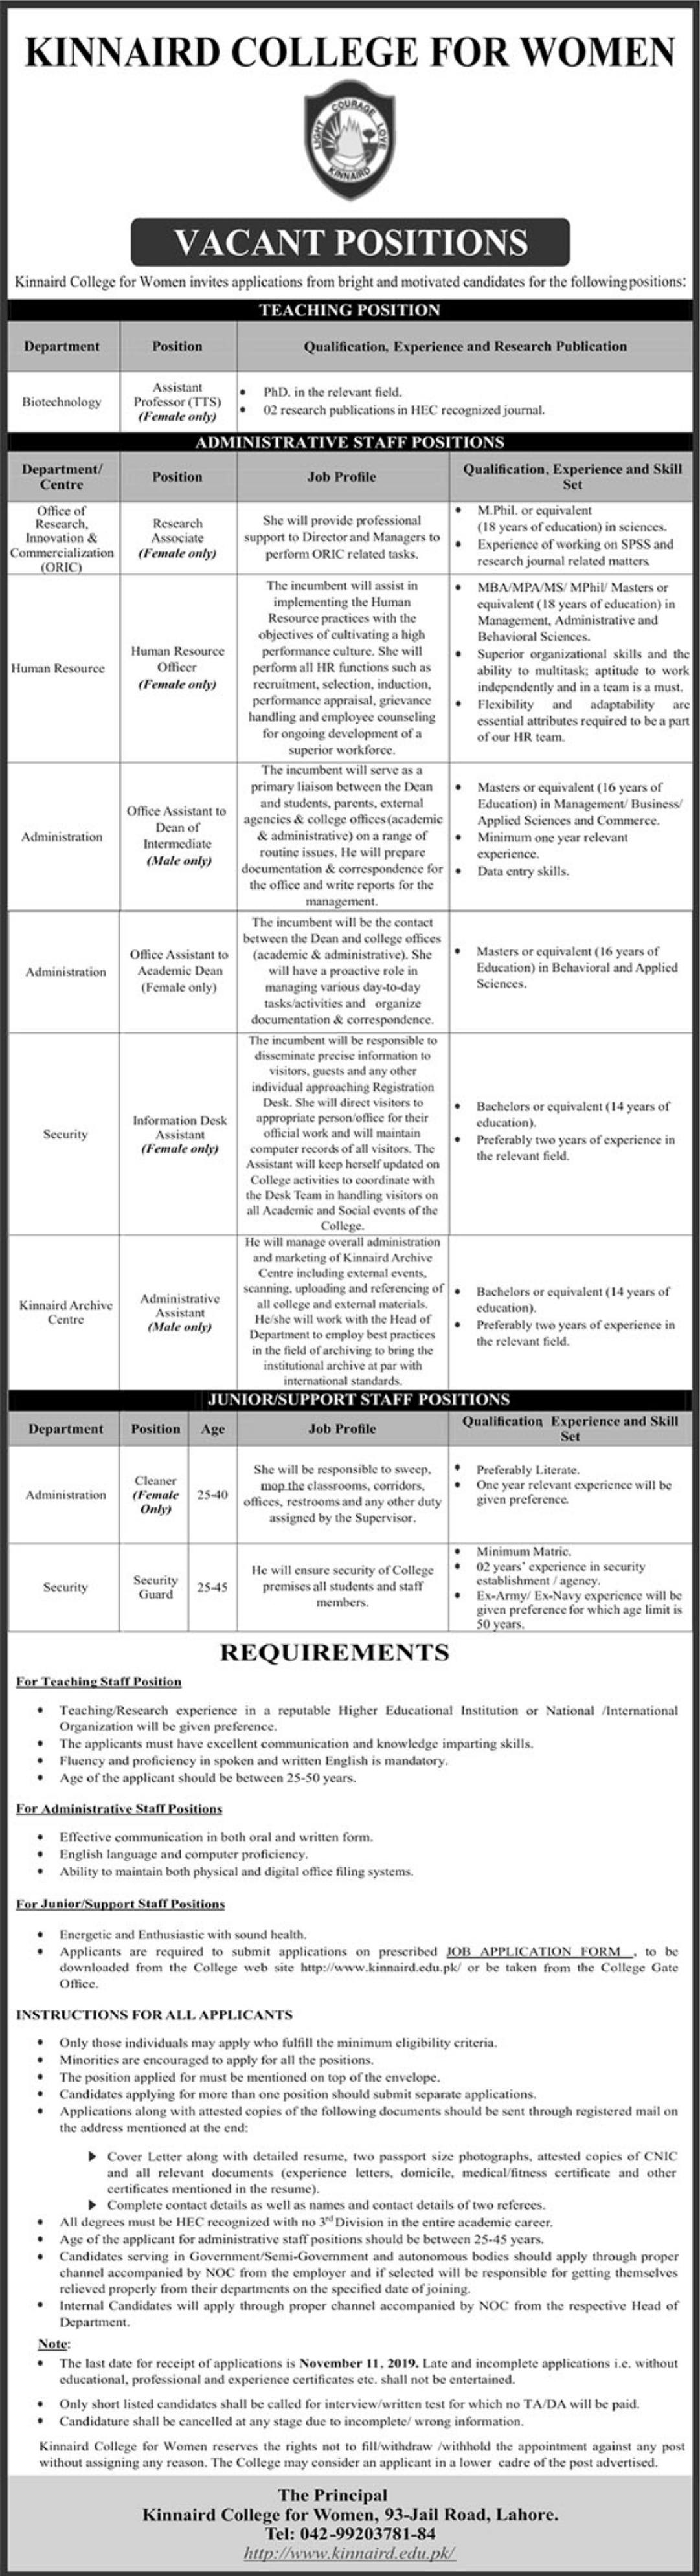 Kinnaird College for Women KCW Jobs 2019 Application Form